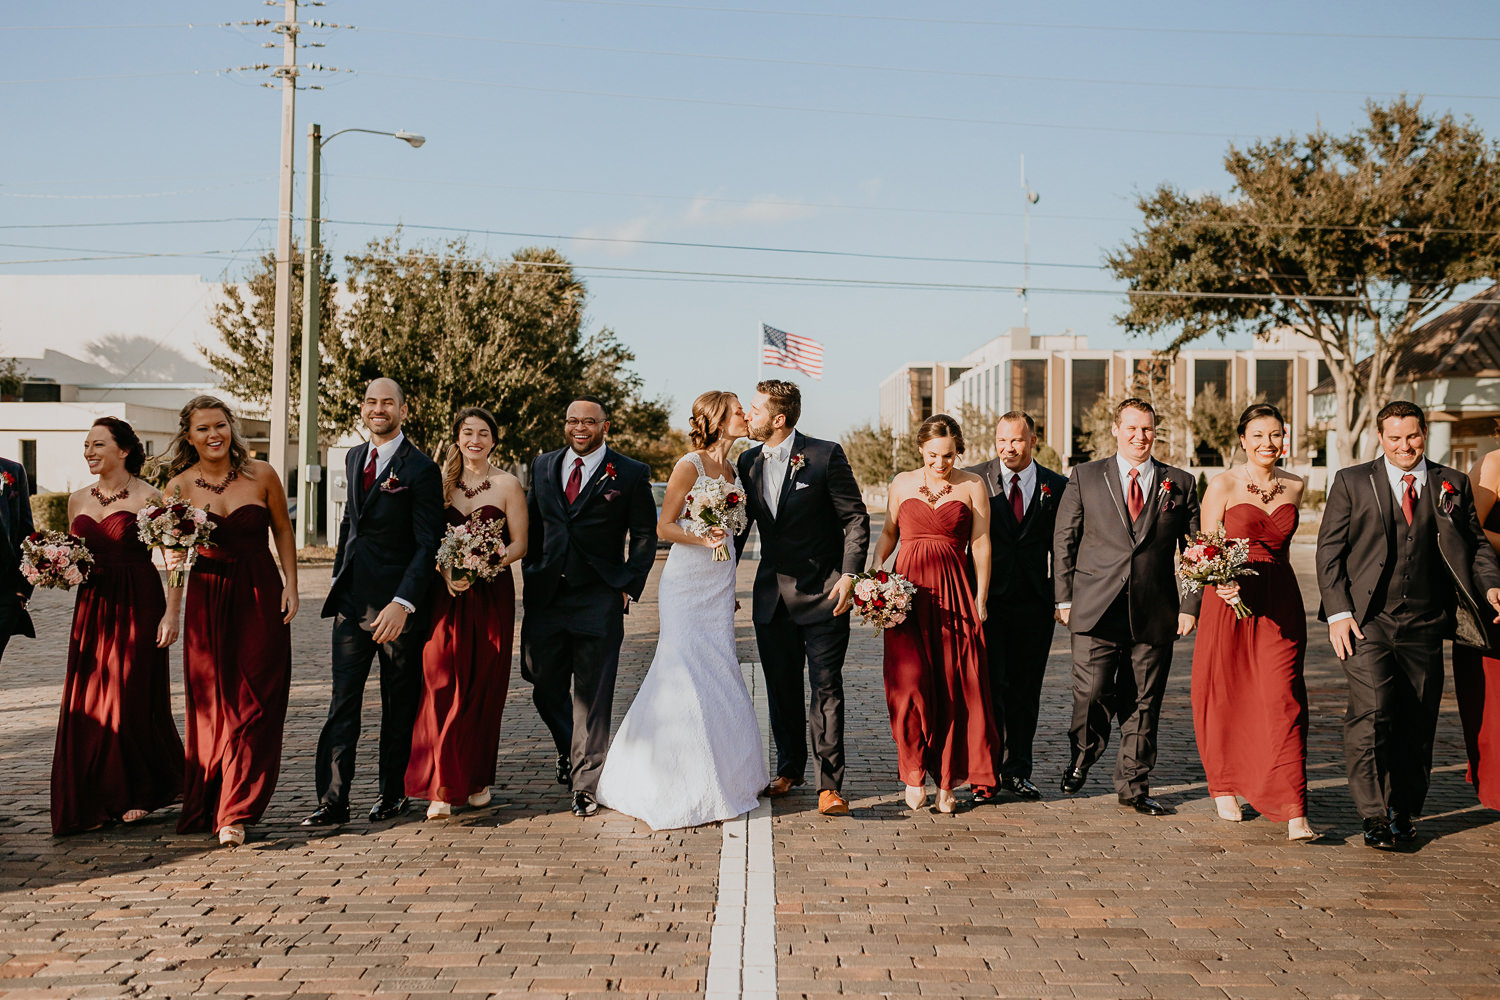 bridal party mixed males and females newlyweds kissing in the middle on cobblestone